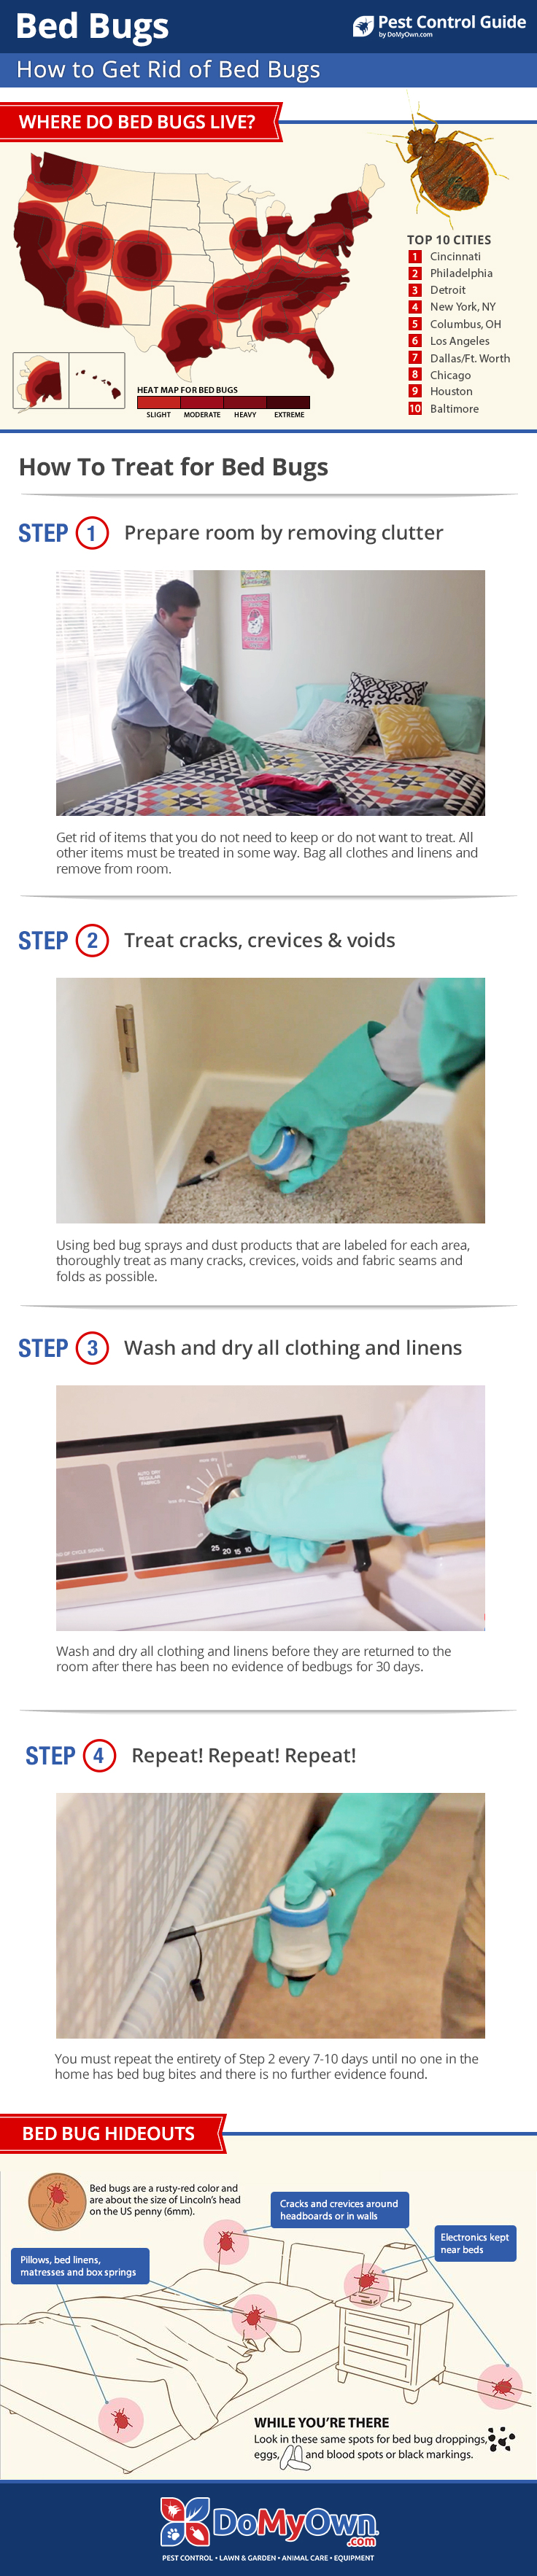 How To Get Rid of Kill Bed Bugs Your StepByStep Guide